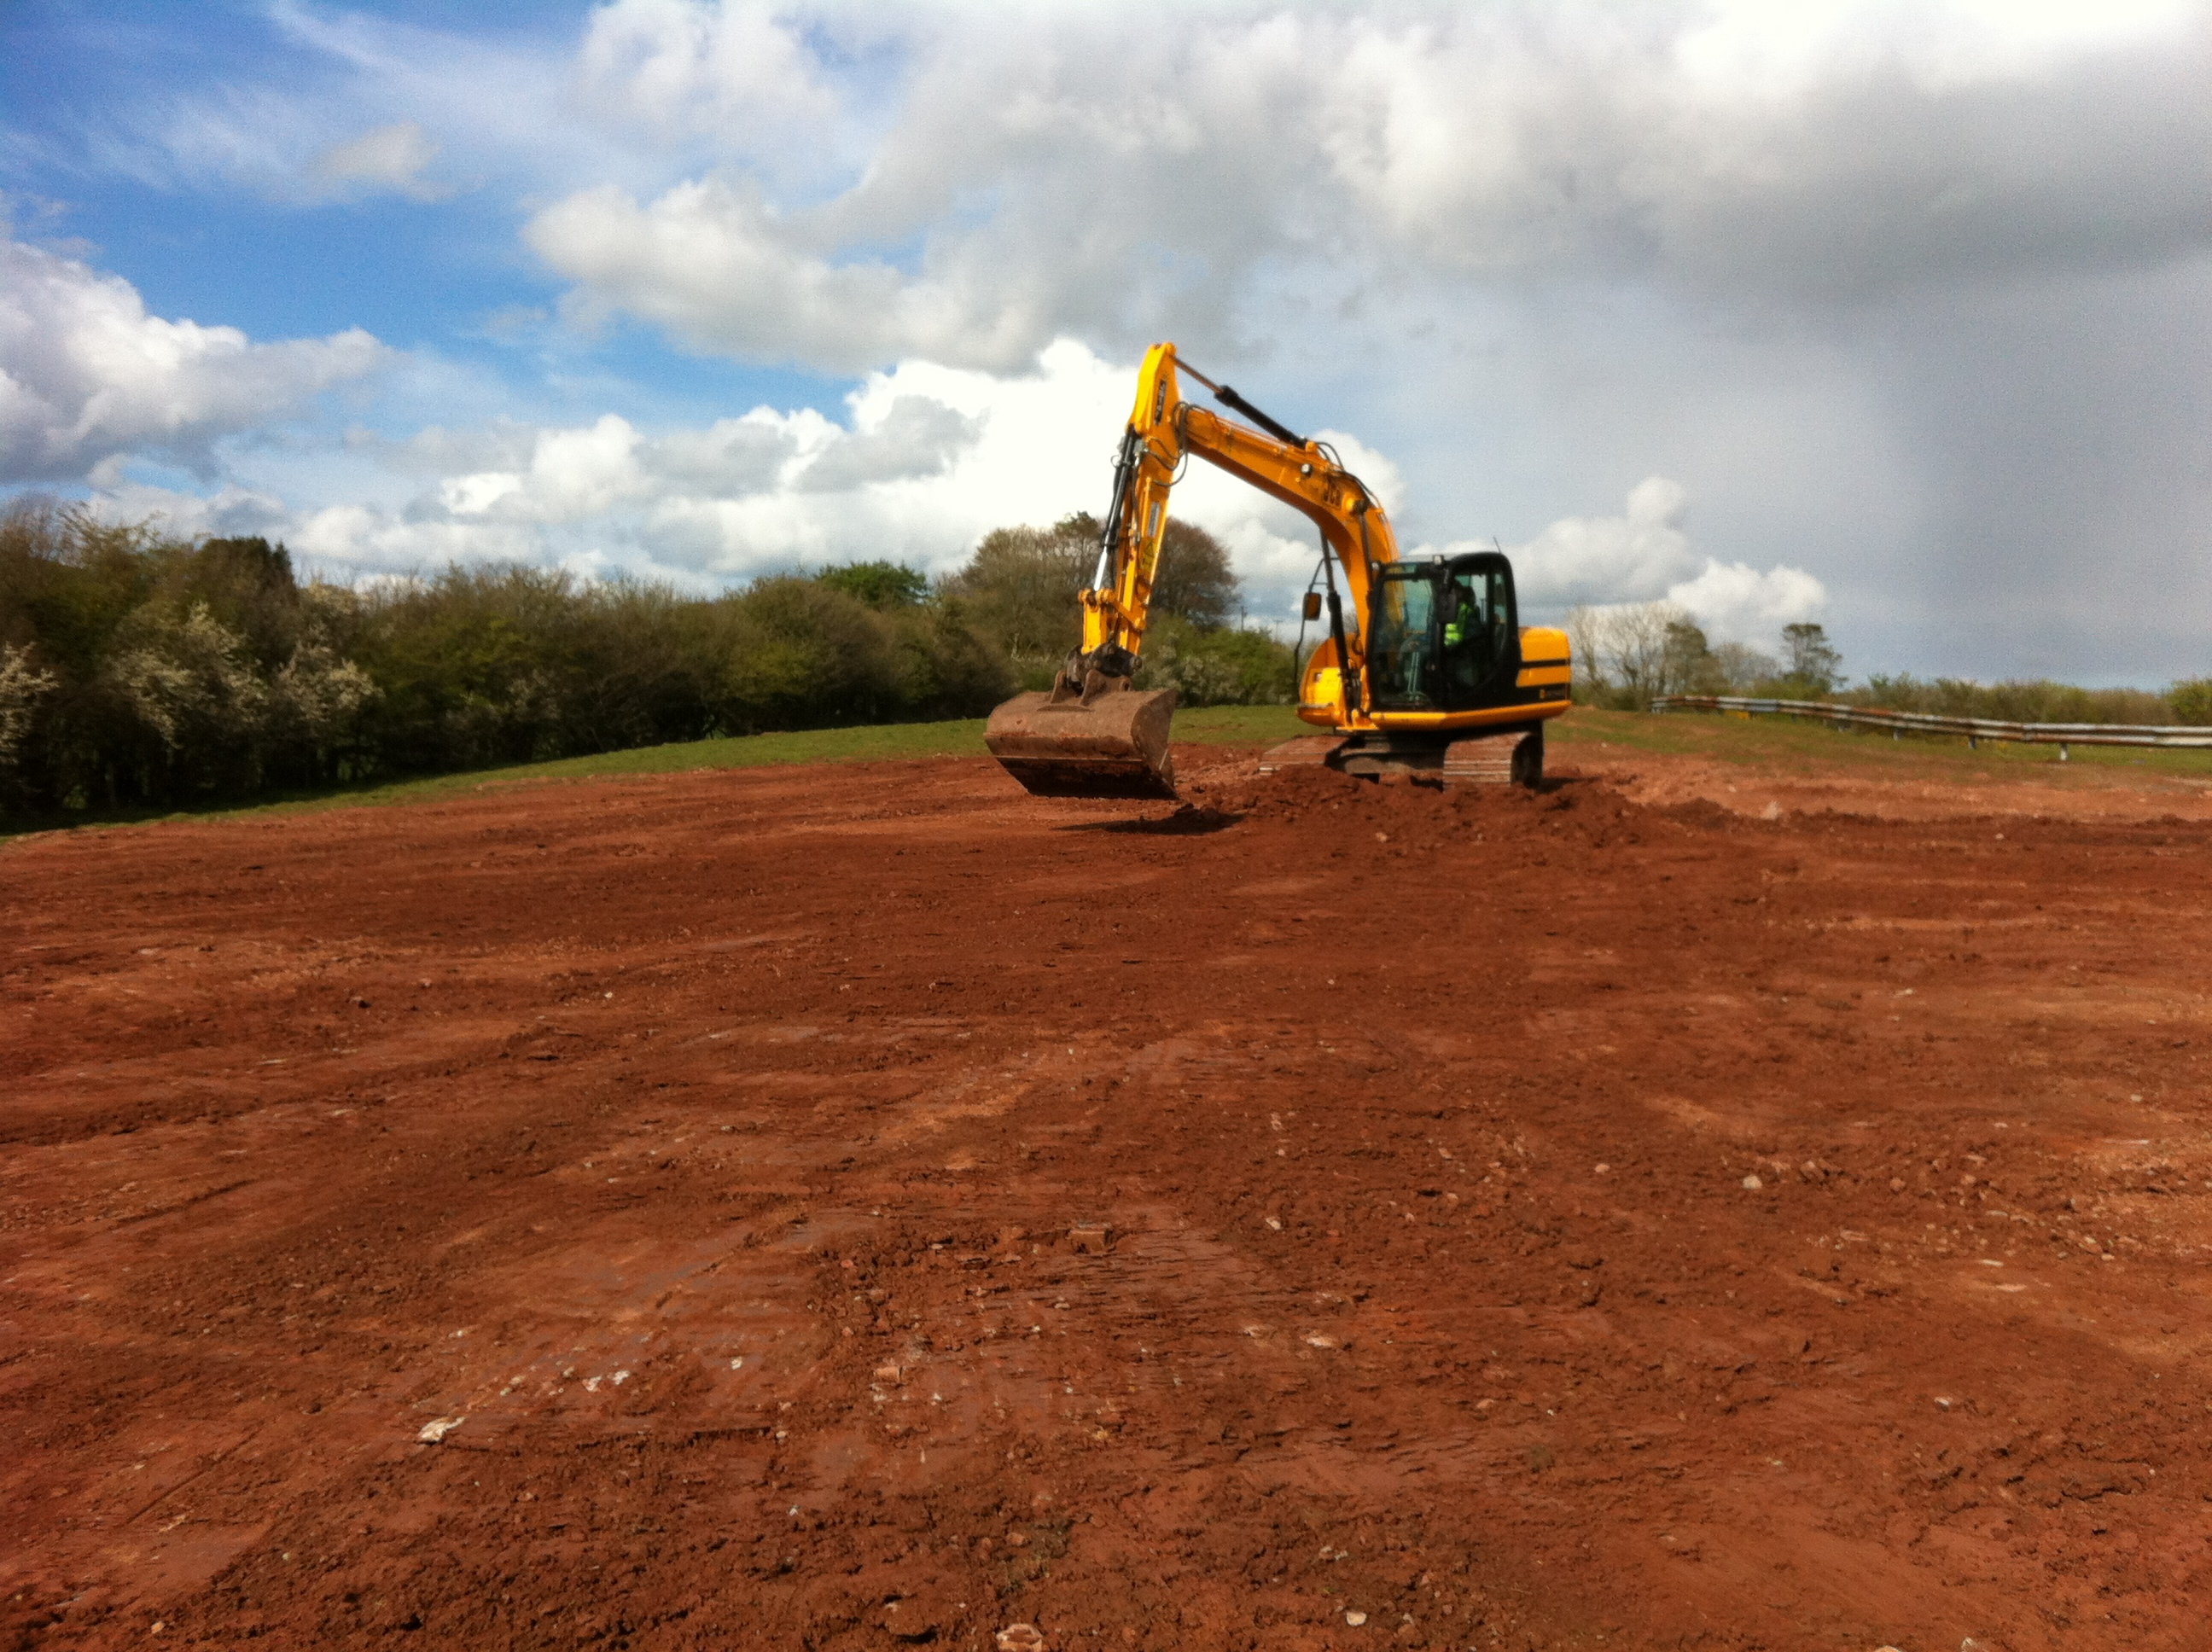 360 excavator, slinger signaller, appointed person, telescopic handler – courses now booking for 2018